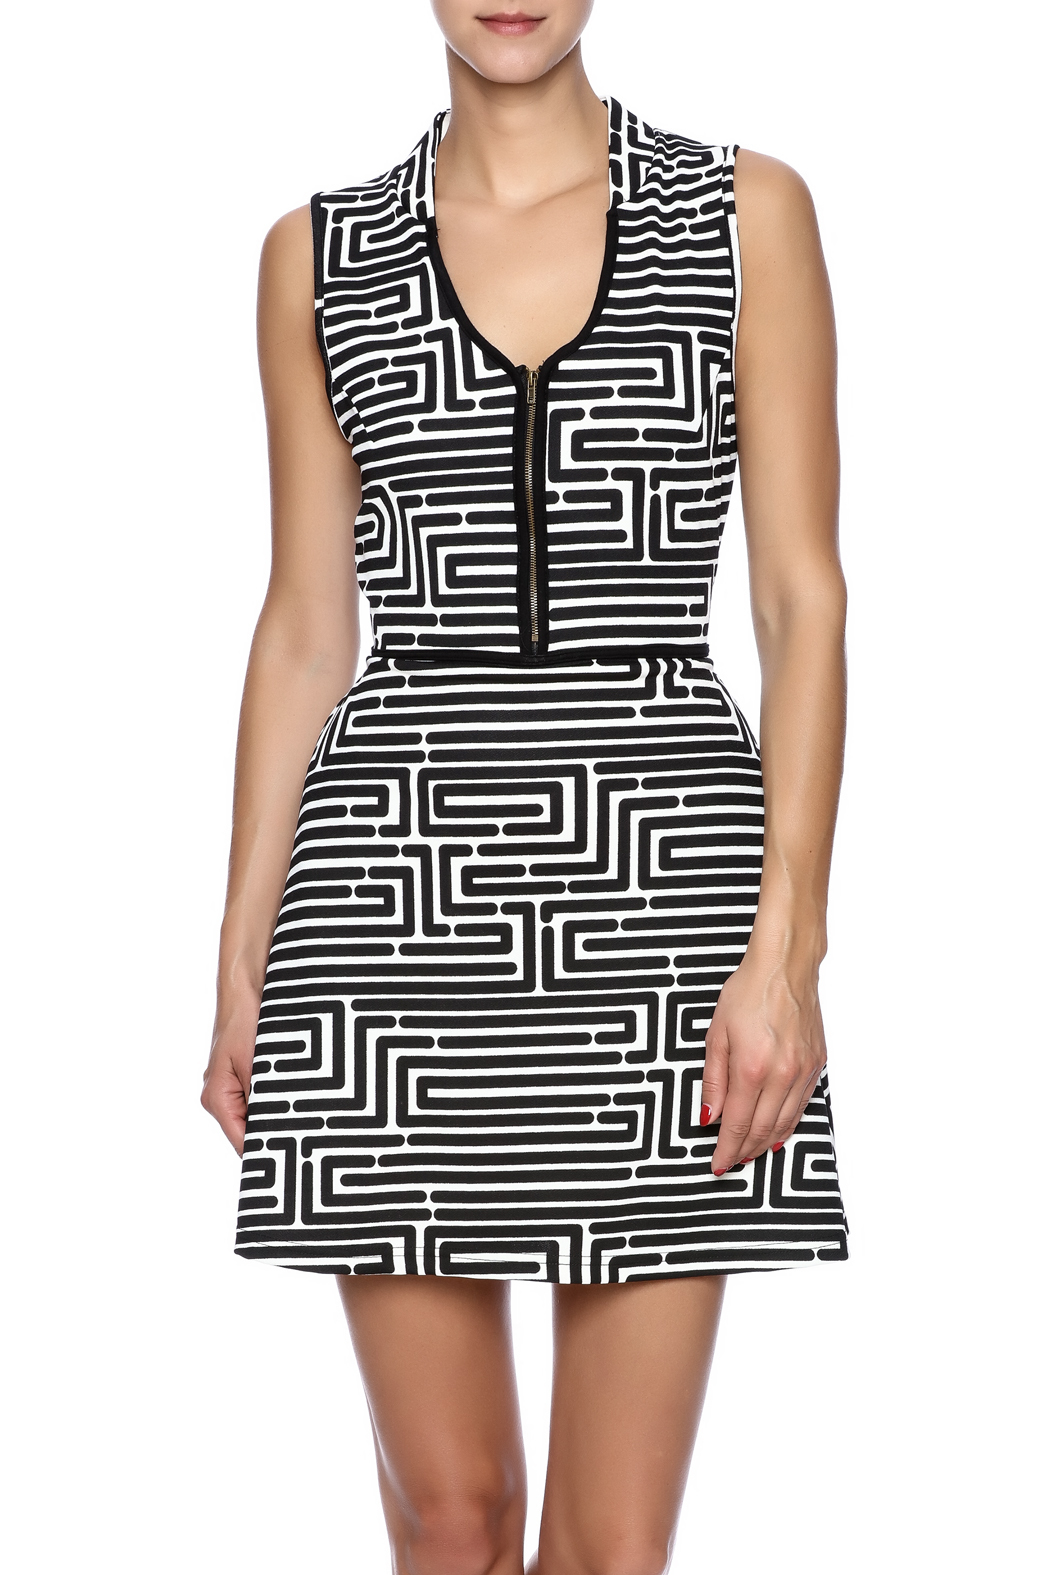 vFish designs Geometric Print Dress - Front Cropped Image